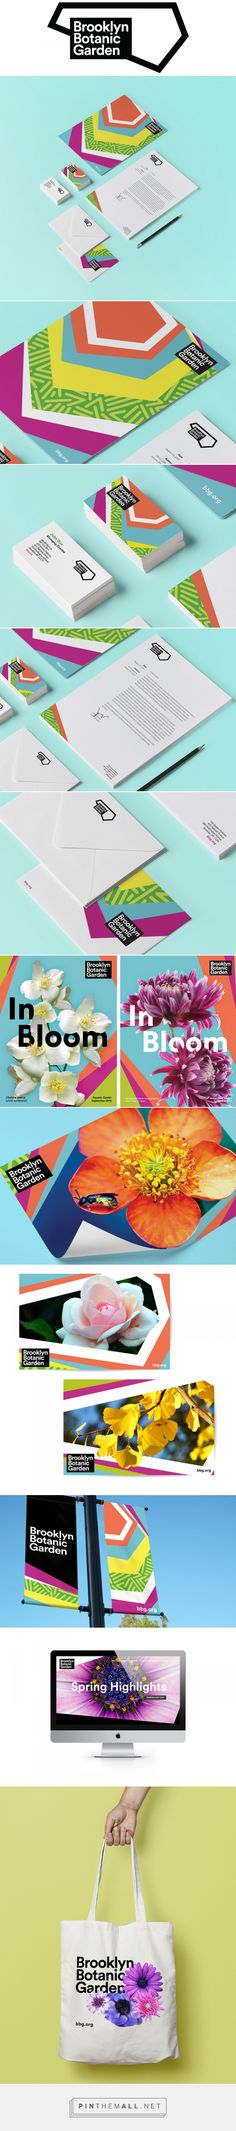 Brooklyn Botanic Garden on Behance | Fivestar Branding – Design and Branding Agency & Inspiration Gallery